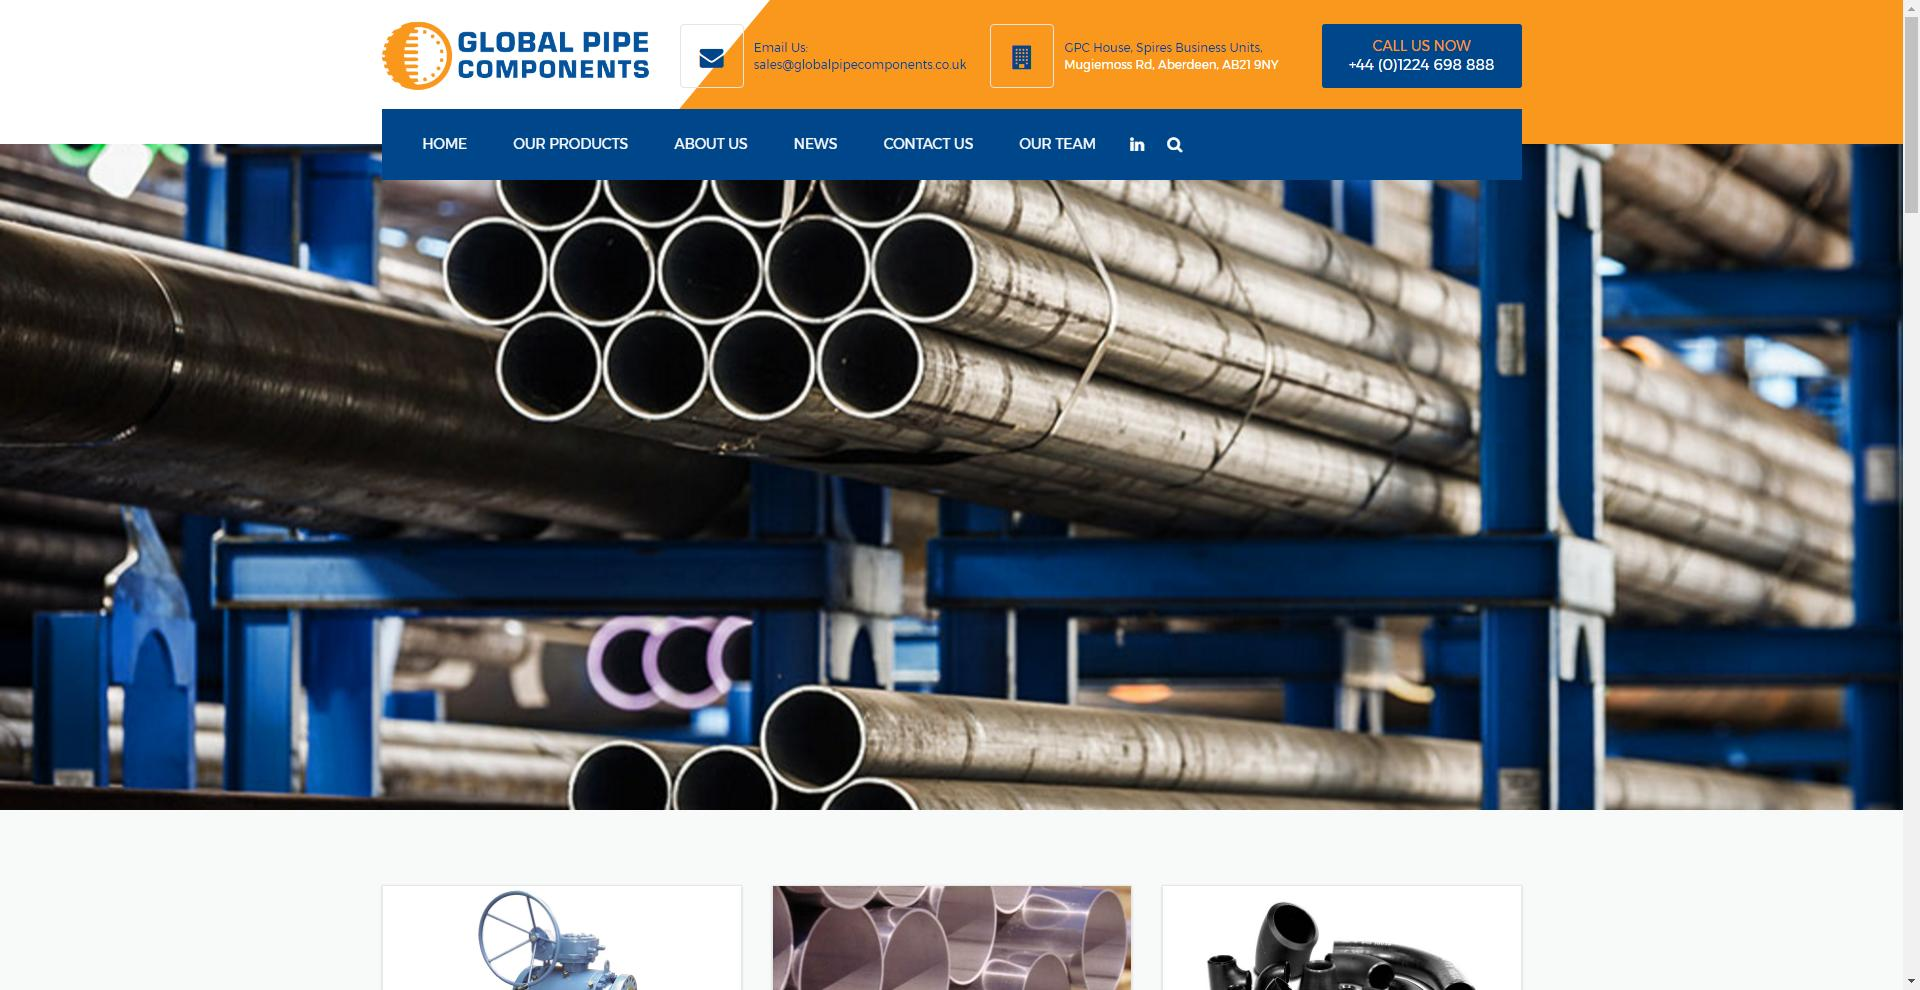 Global Pipe Components